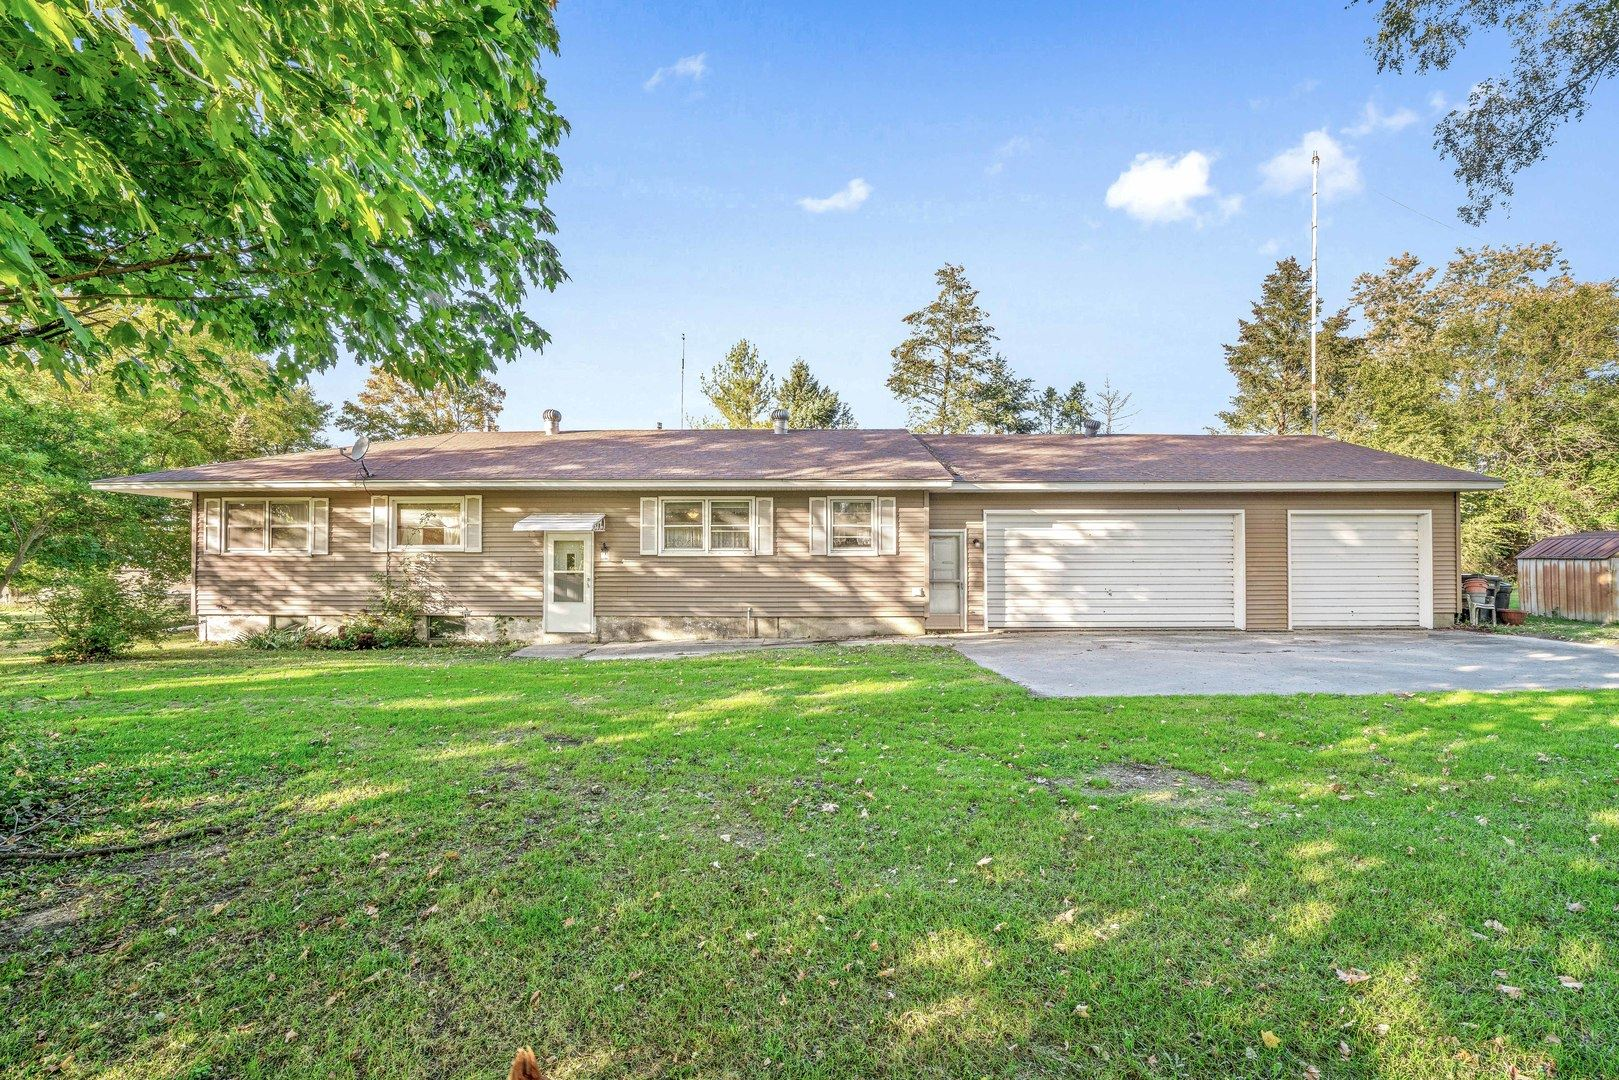 6N731 County Line Road, Maple Park, IL 60151 - #: 11251587